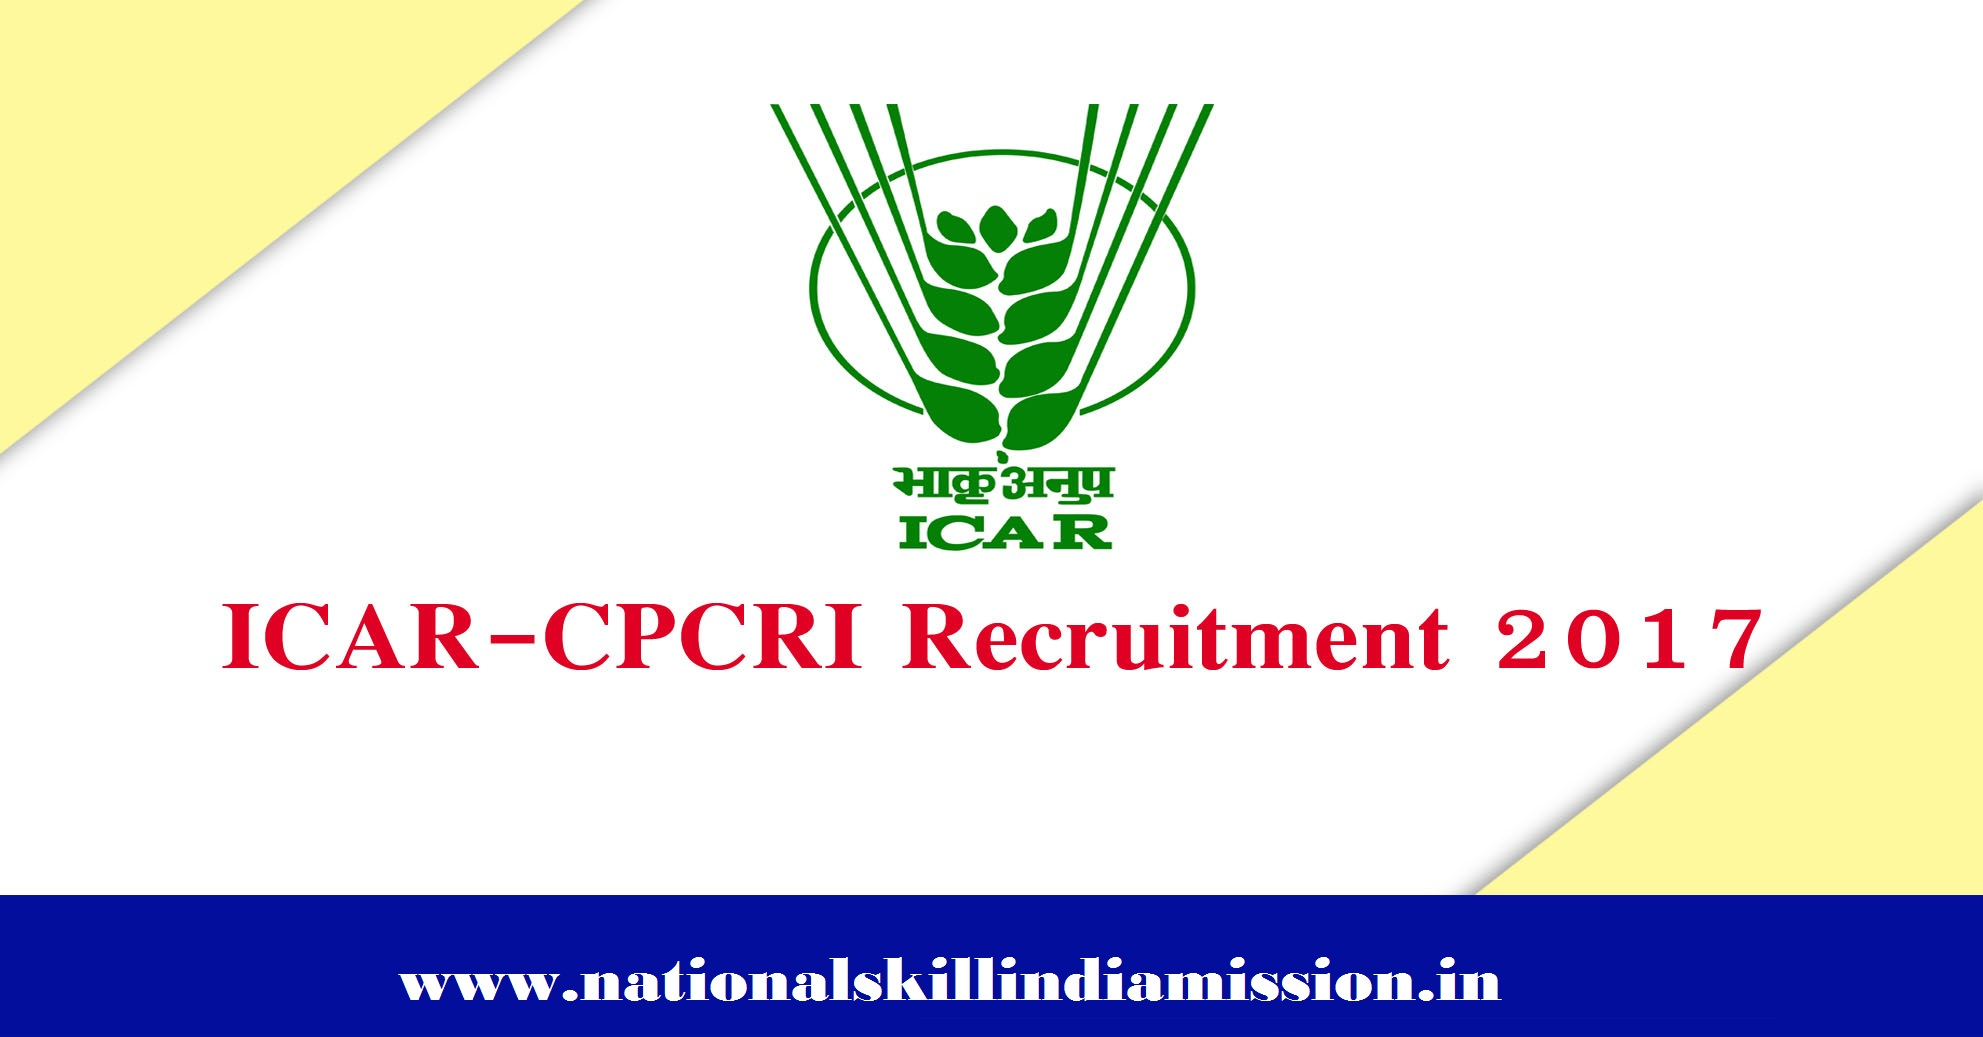 Central Plantation Crops Research Institute - CPCRI Recruitment - Field Assistant - Walk-in-Interview 28 December 2017